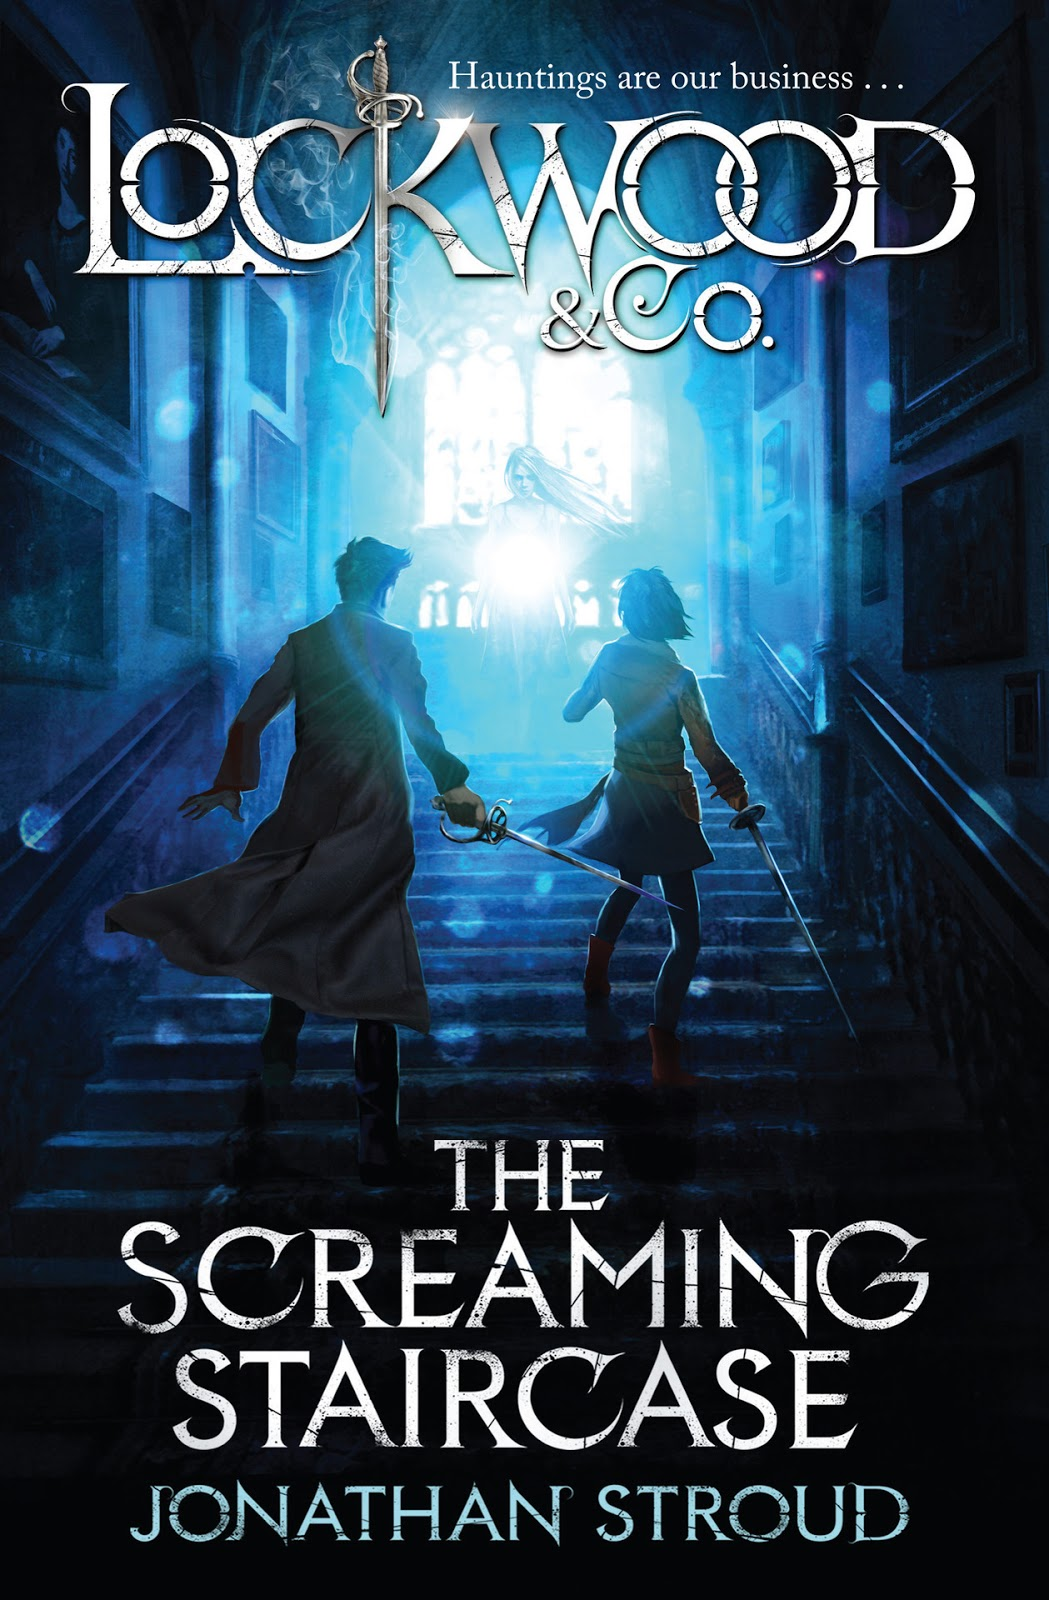 Loockwood & Co: The Screaming Staircase